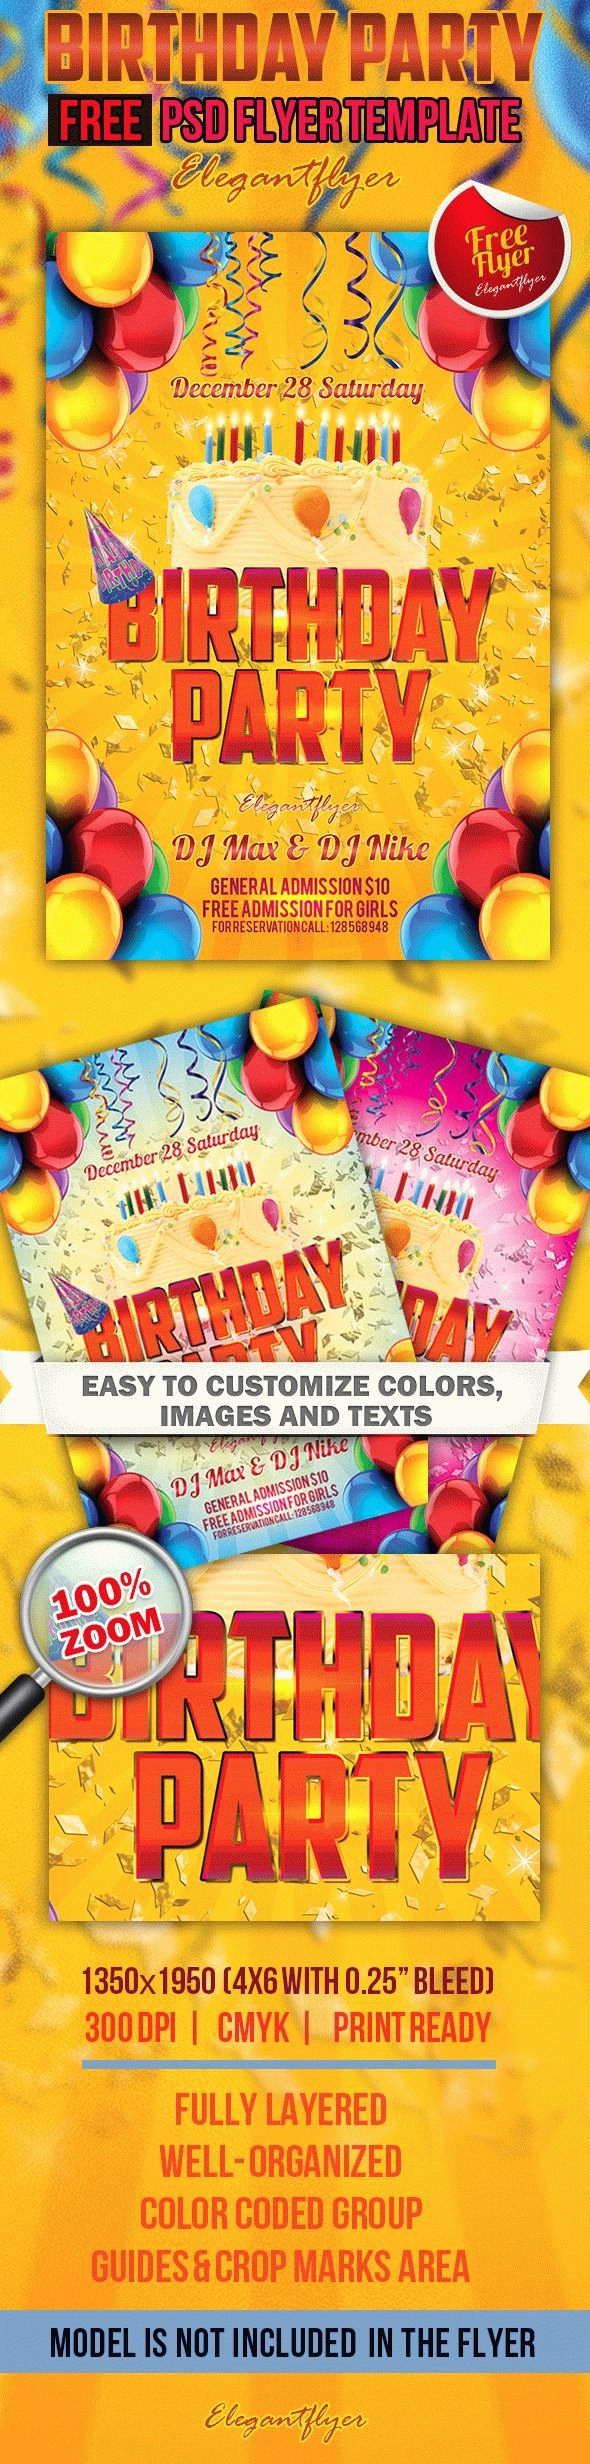 Birthday Party Flyer Template Inspirational Birthday Party Free Flyer Template – by Elegantflyer